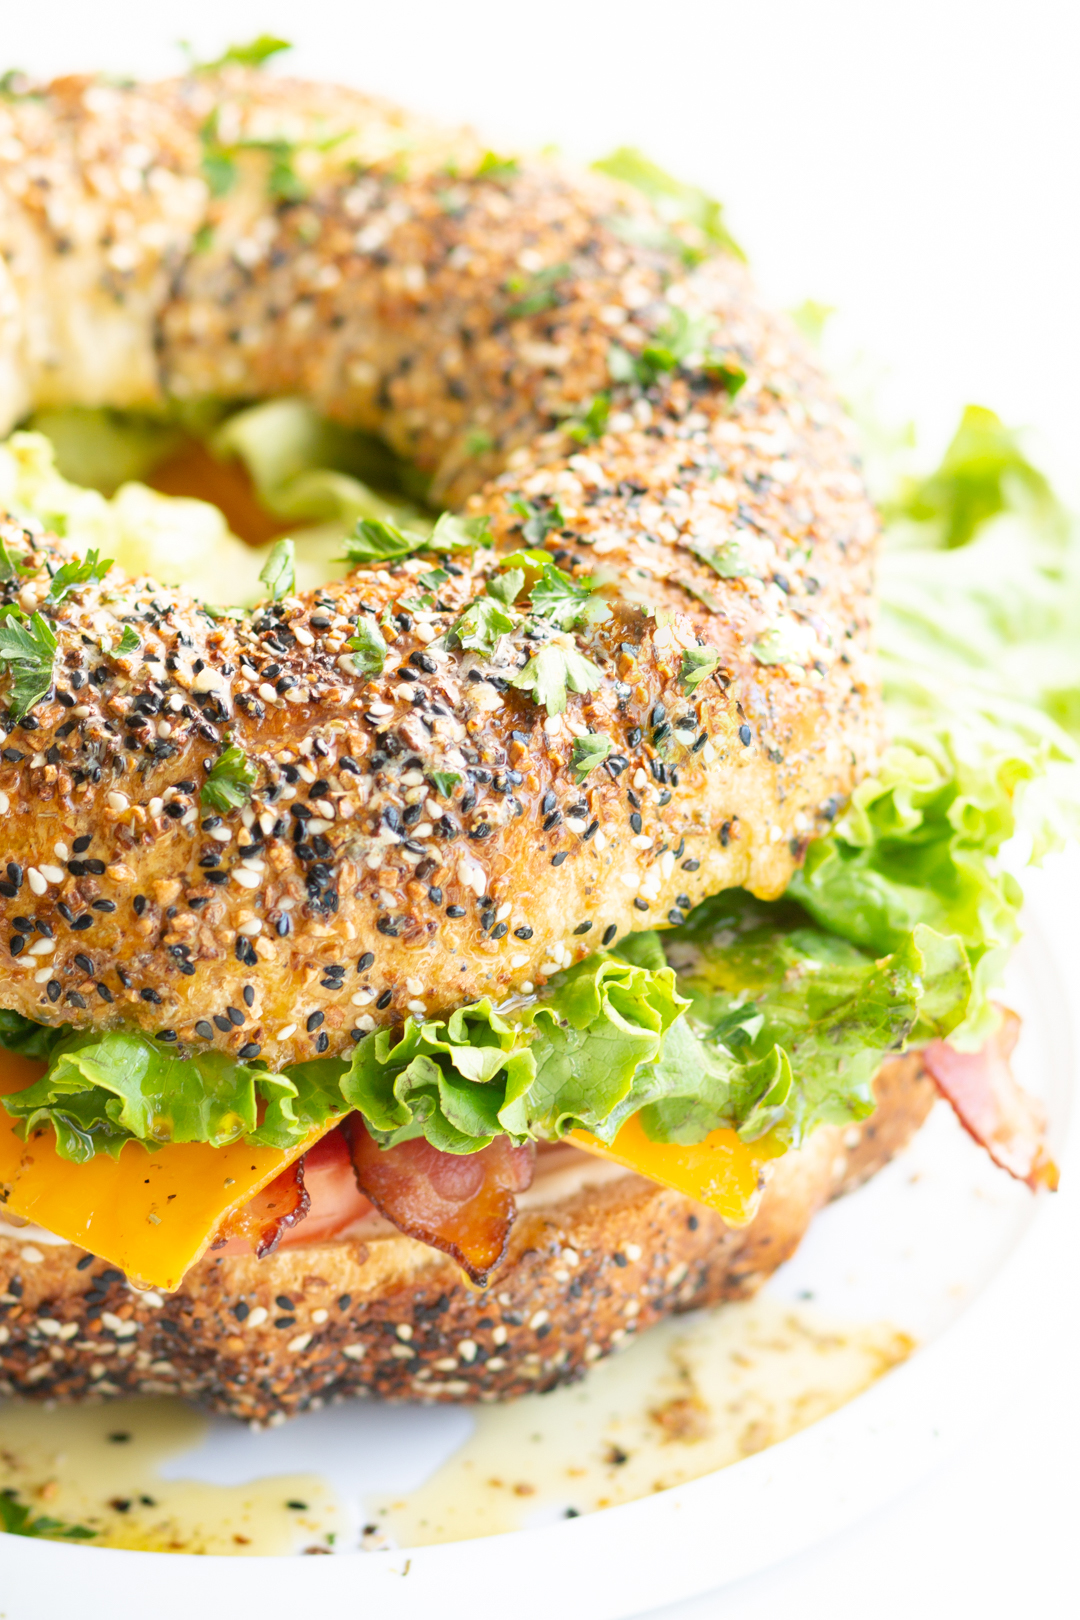 BLT bundt sandwich stuffed with BLT toppings and topped with fresh herbs